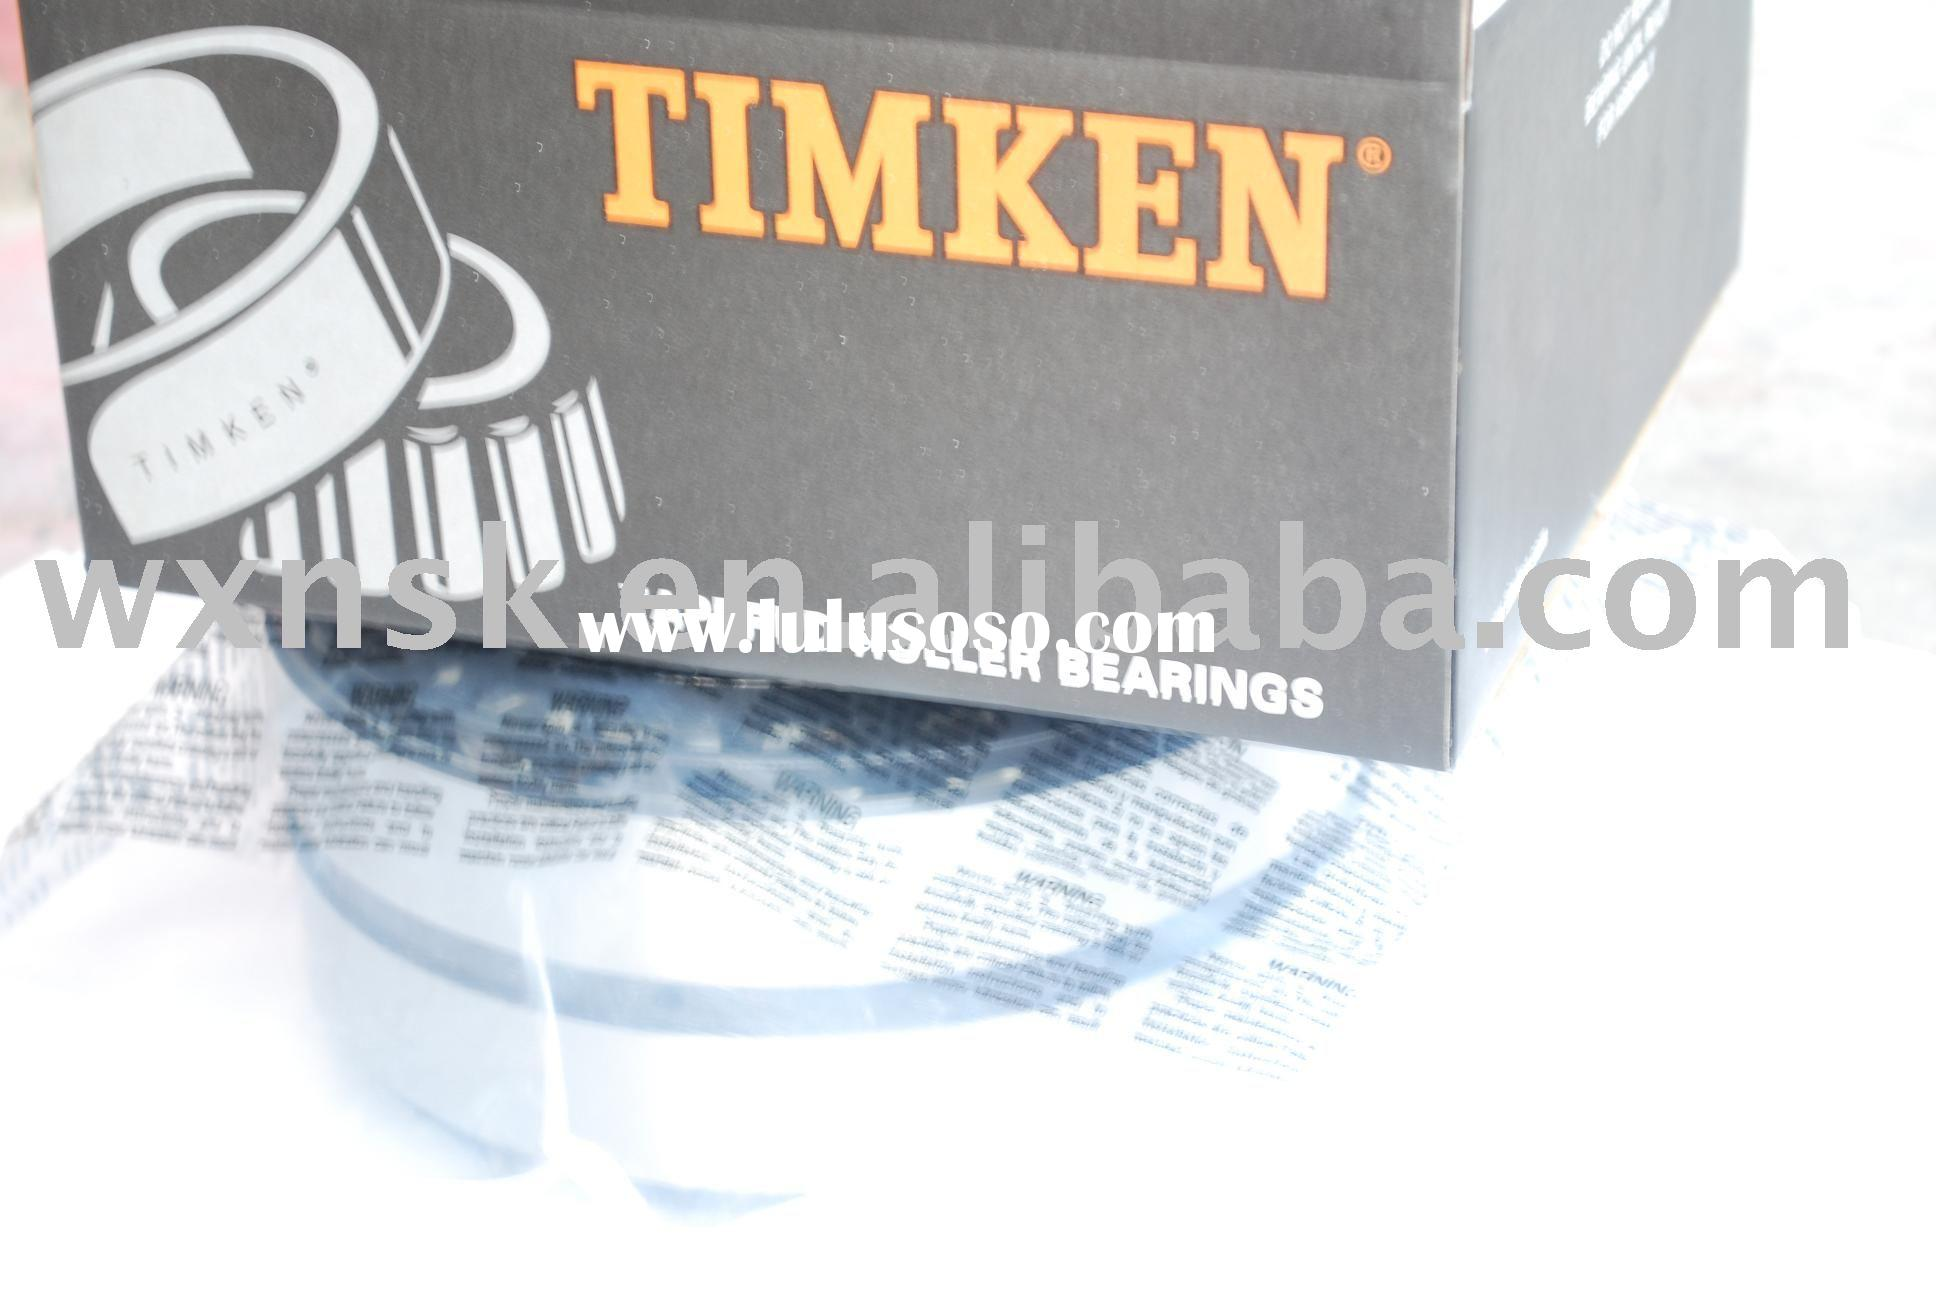 Timken Tapered Roller Bearings